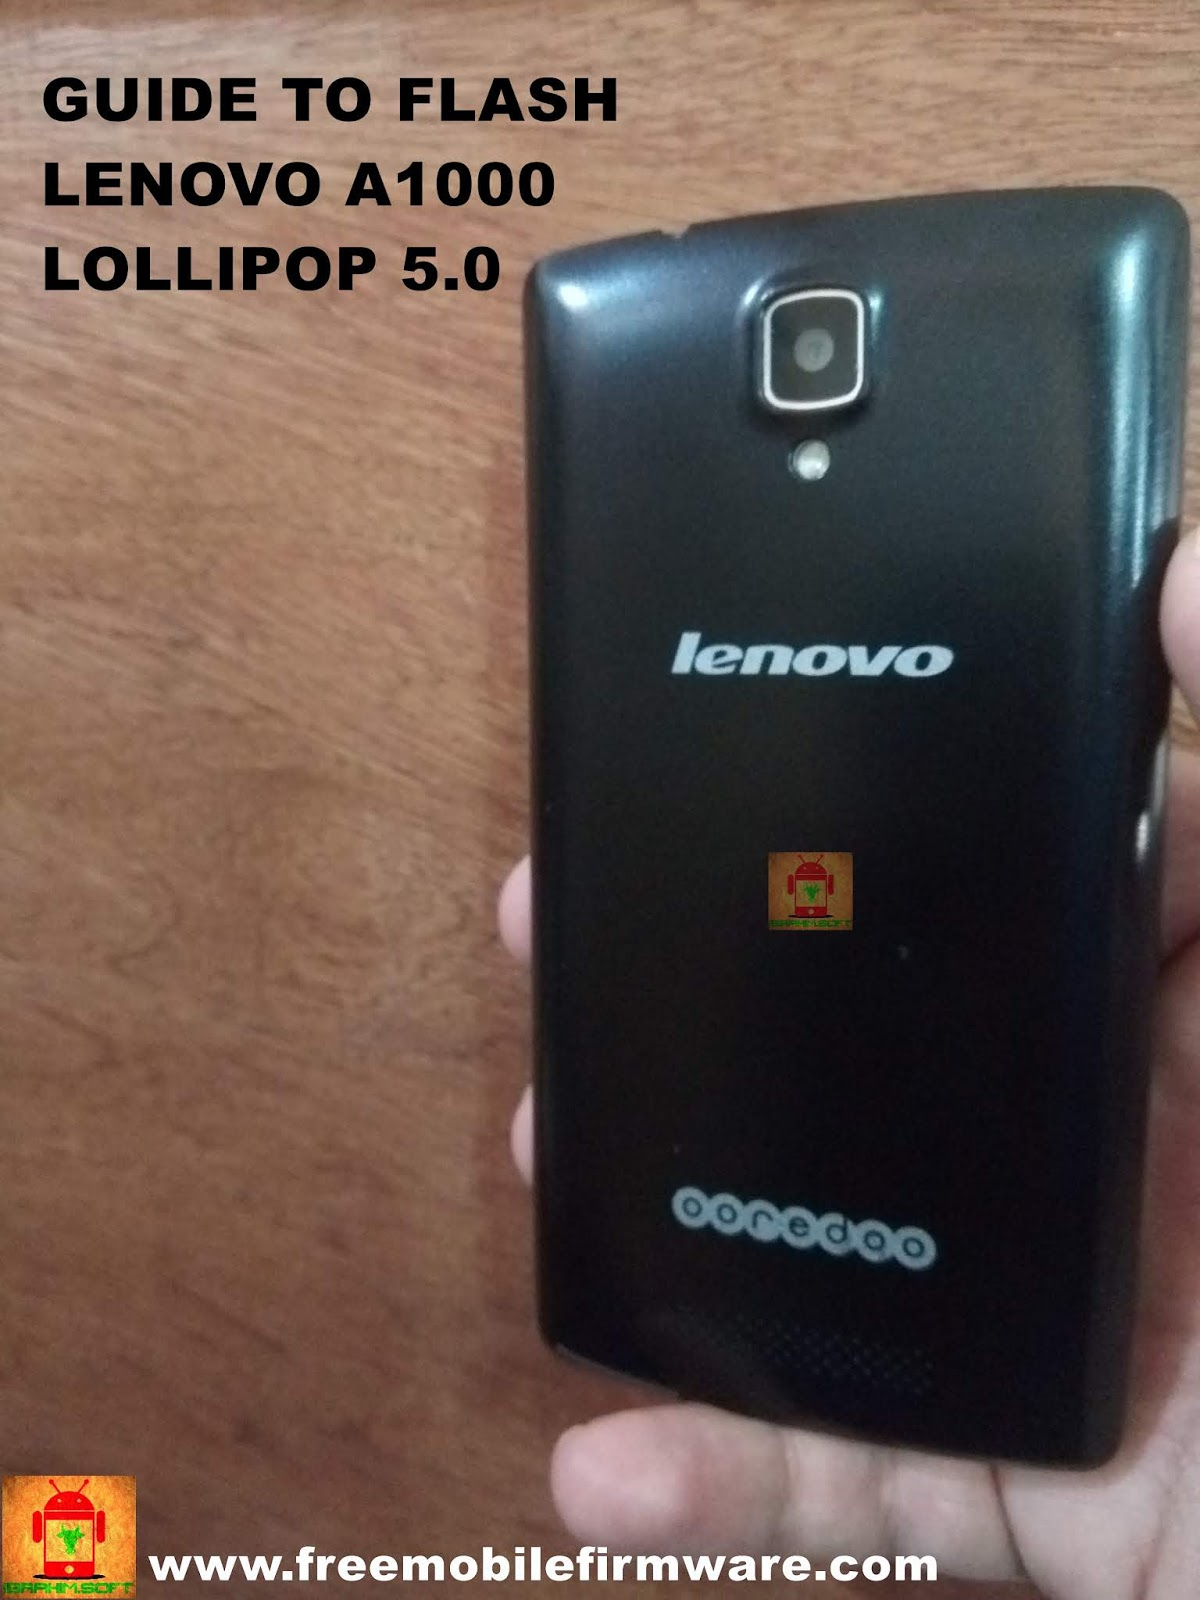 Flash Lenovo A1000 Android Lollipop 5 0 Using SPD Flashtool